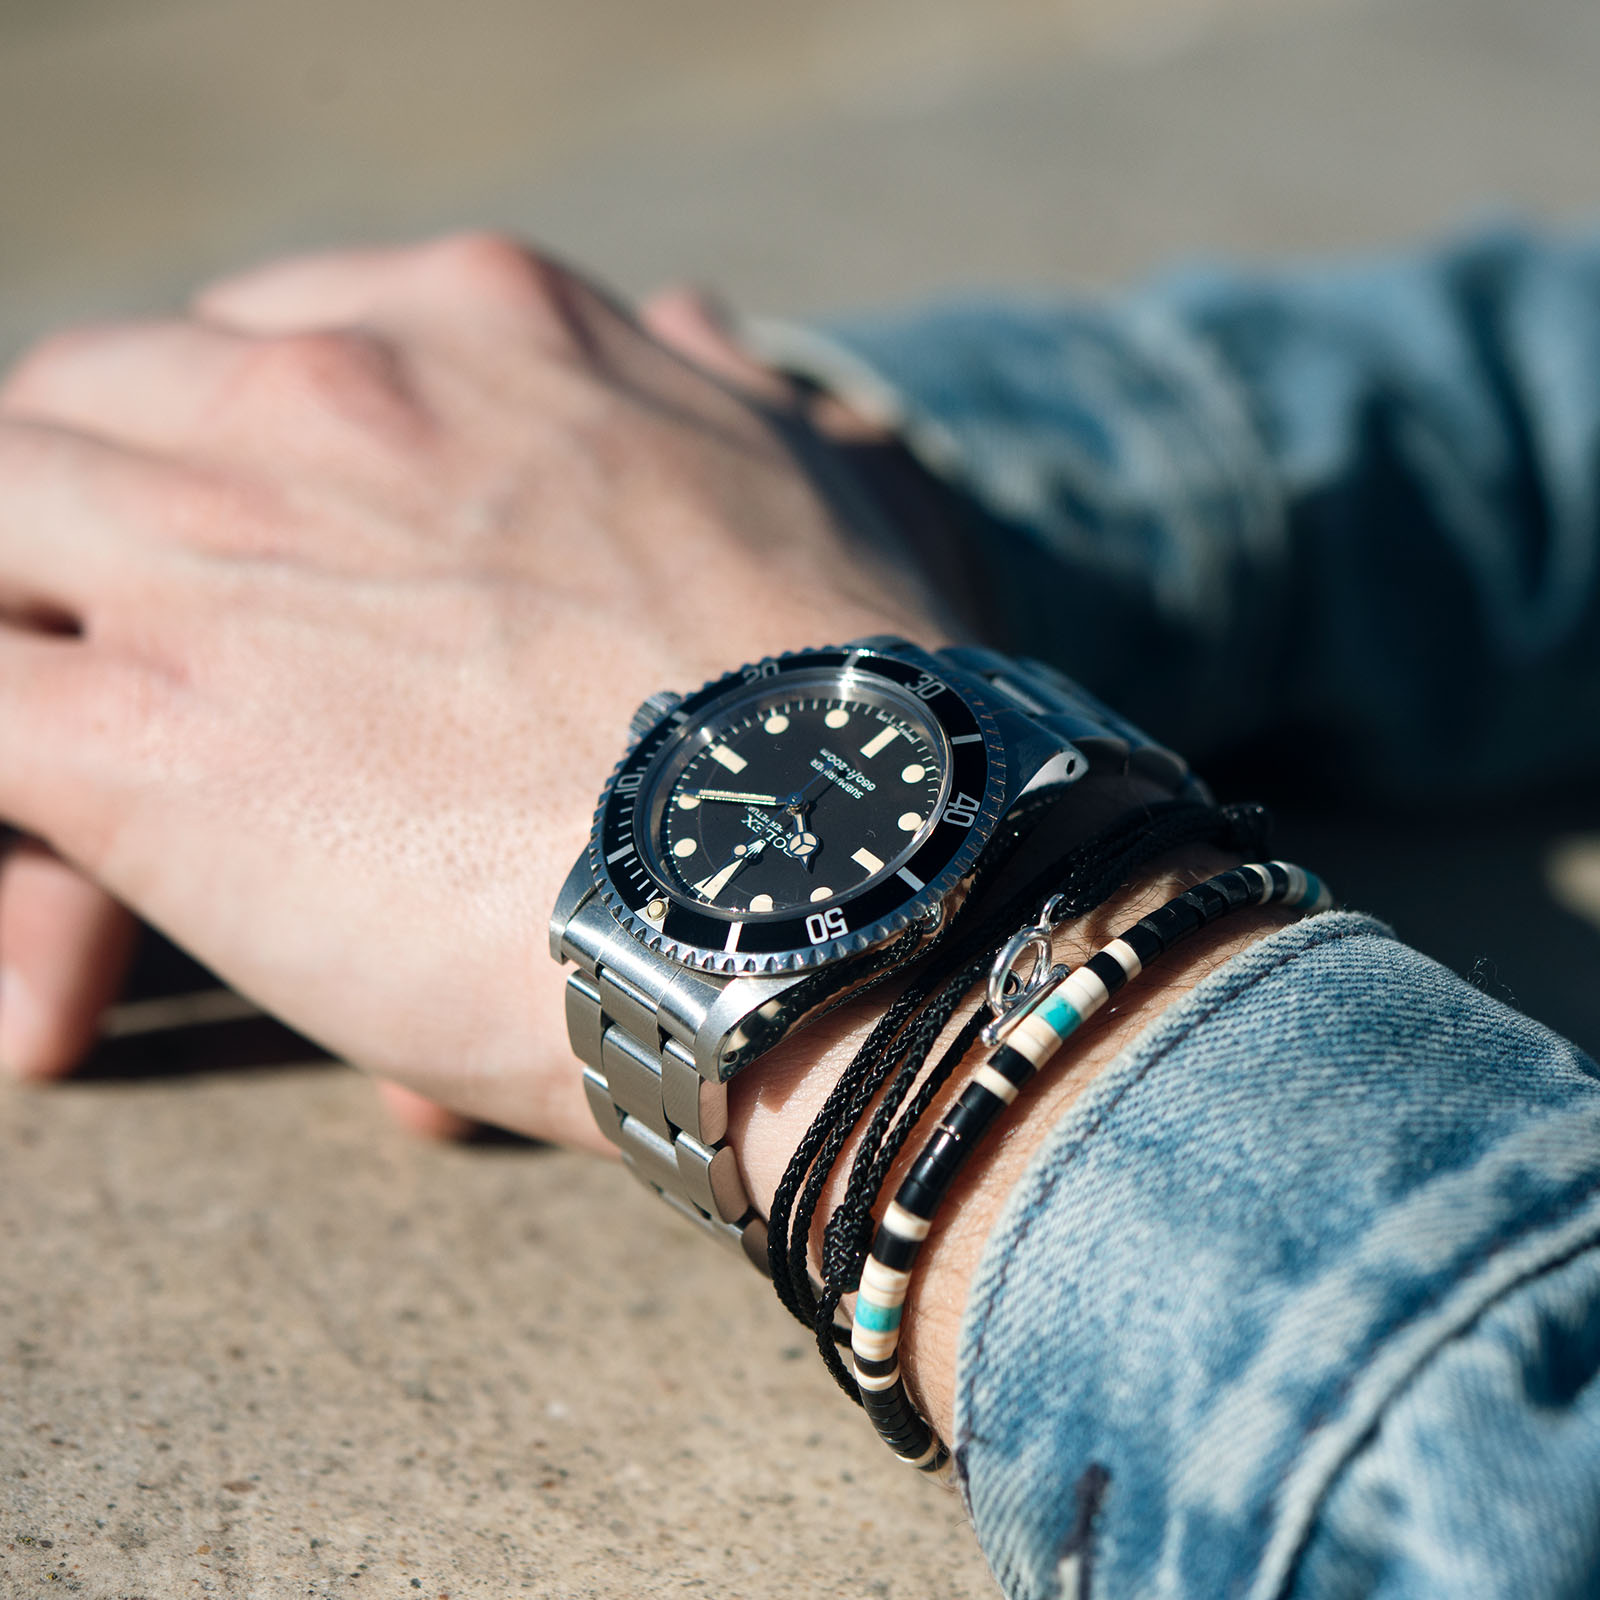 Vintage Rolex 5513 Submariner Love - Article at Bulang and Sons - Maxi Mk5 Dial